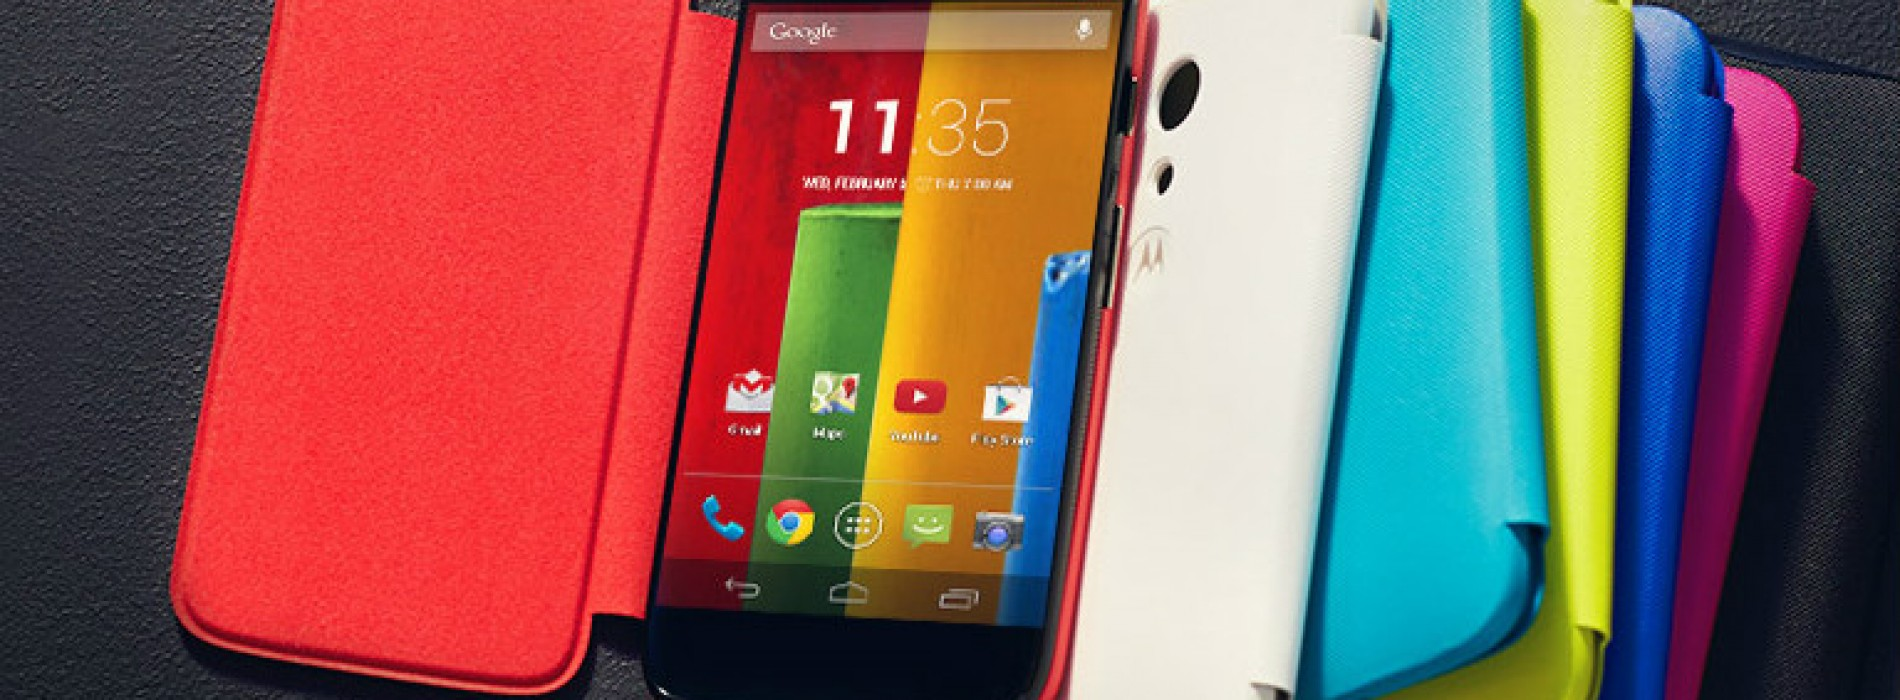 Moto G coming soon to Verizon Wireless?